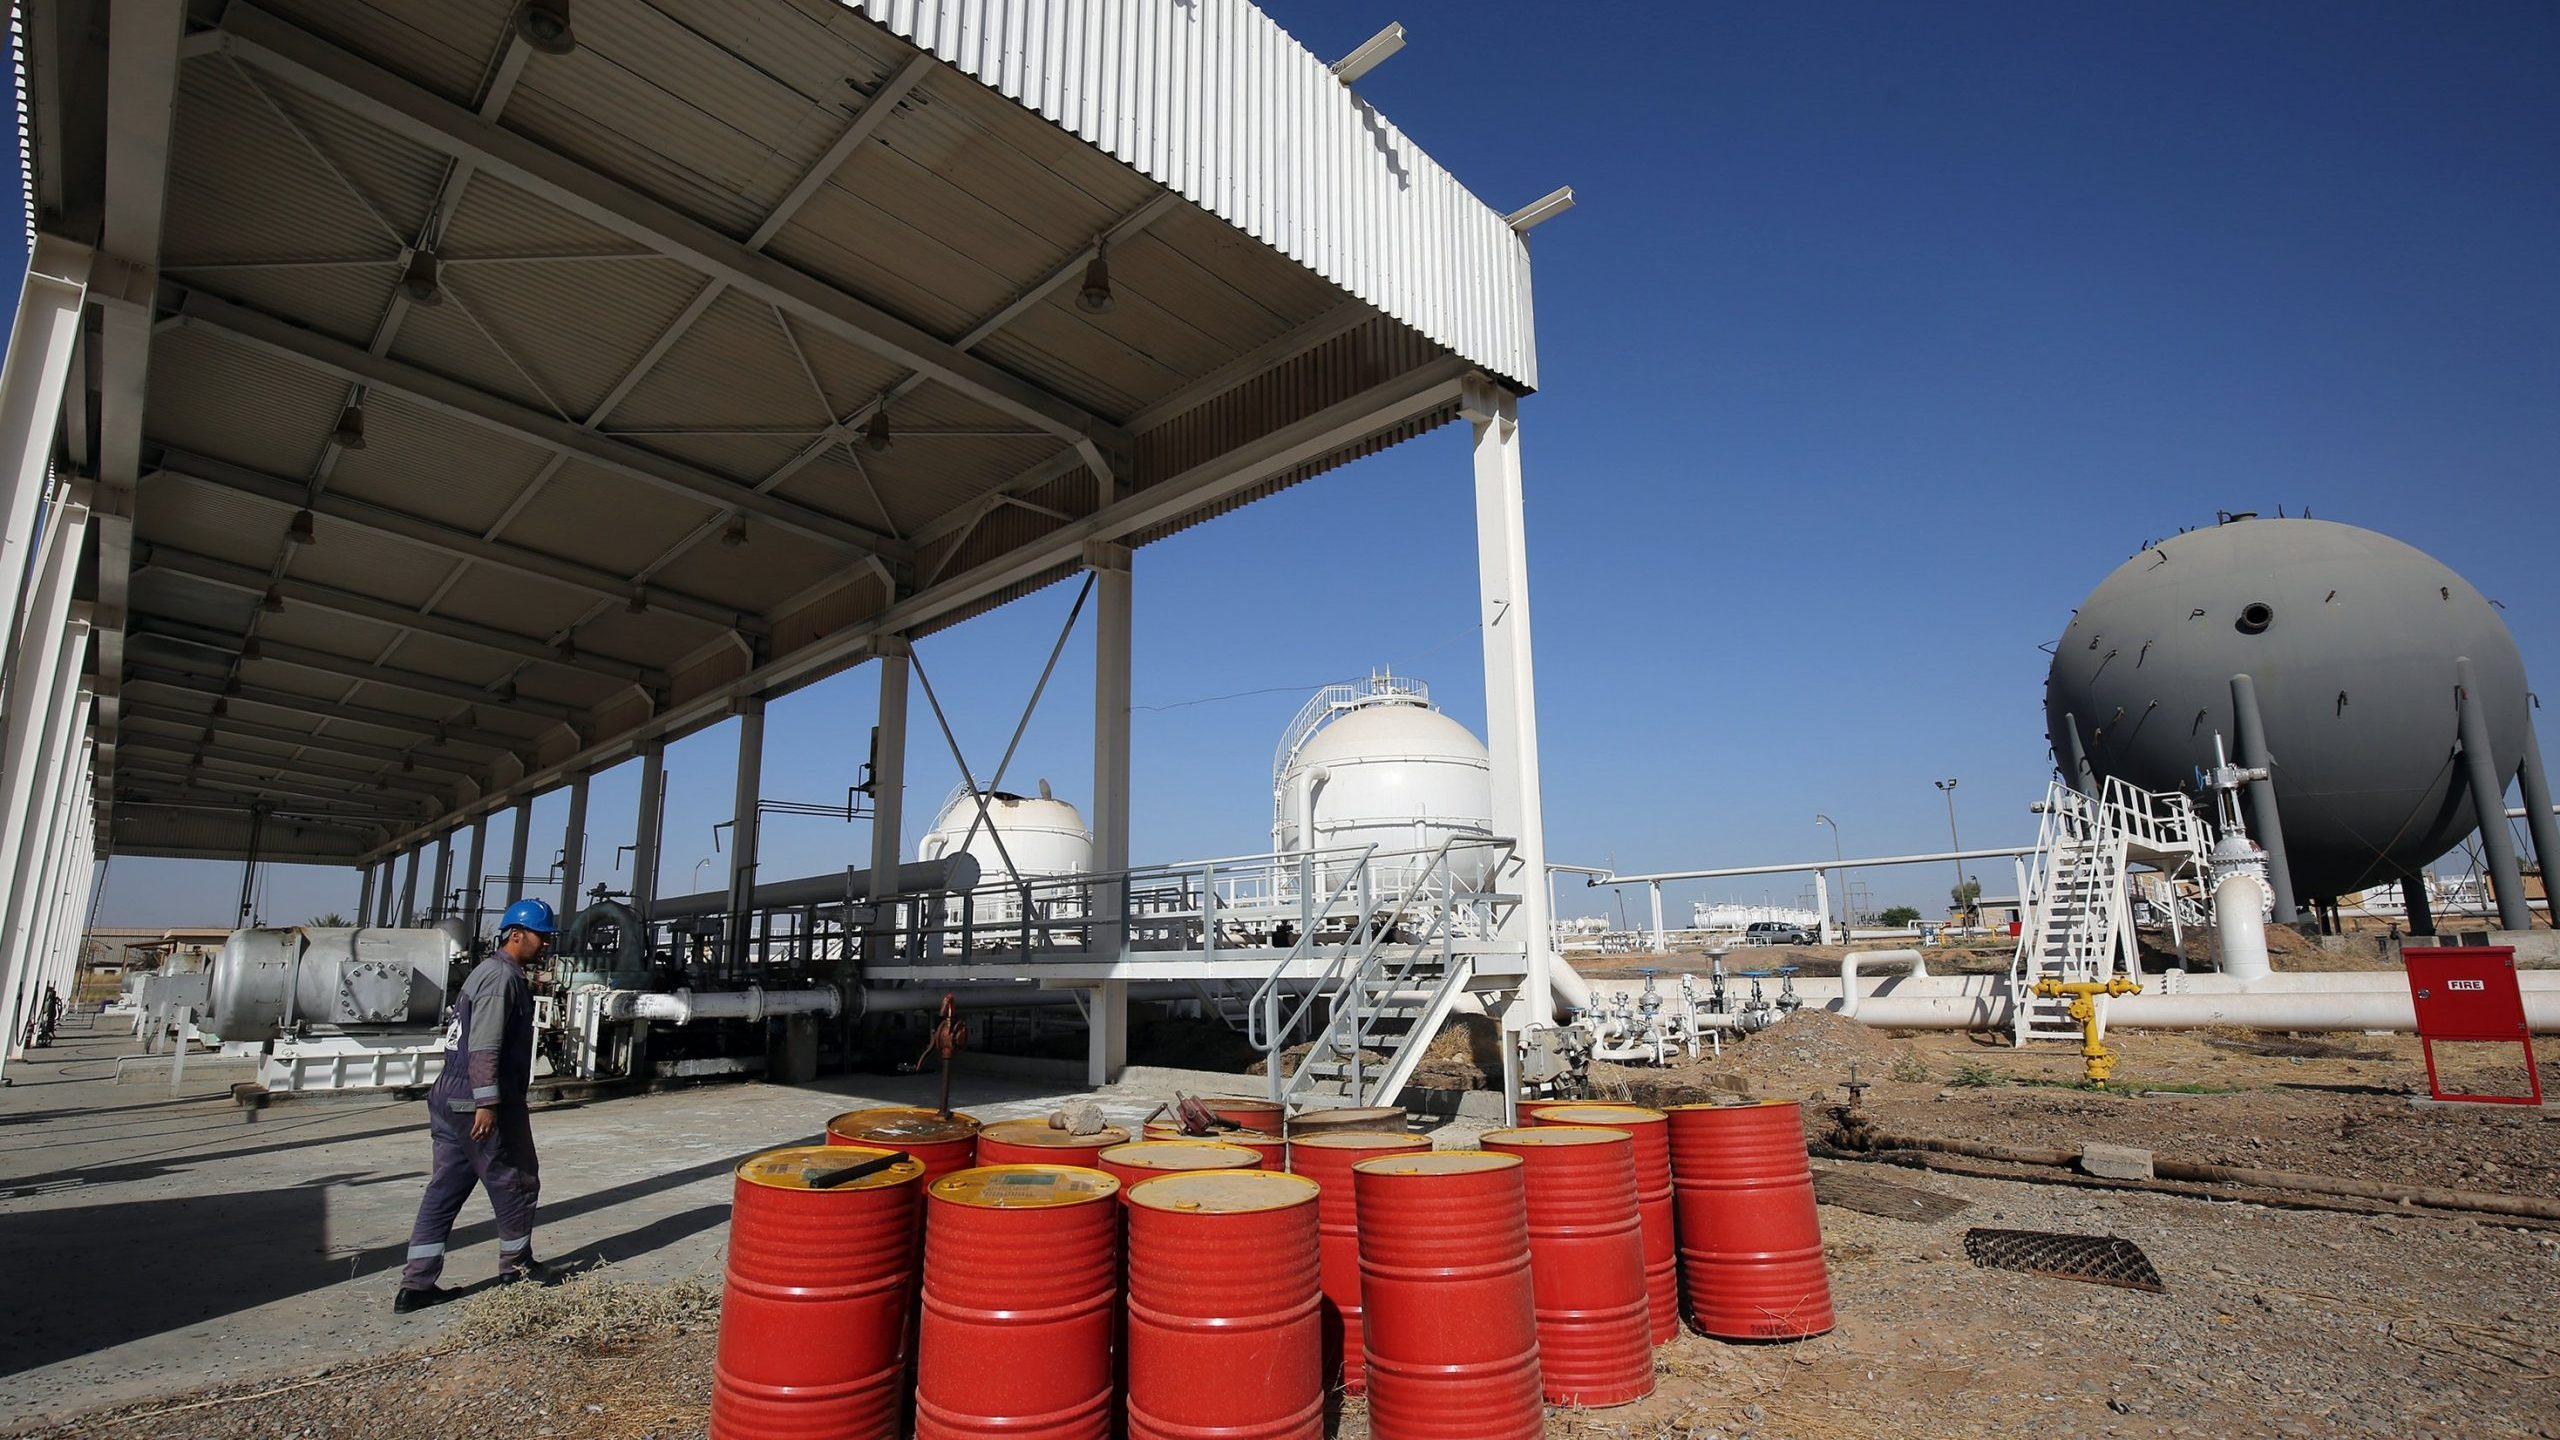 Oil barrels are shown in an Iraqi oil field in this undated photo. (Credit: AHMAD AL-RUBAYE/AFP via Getty Images)